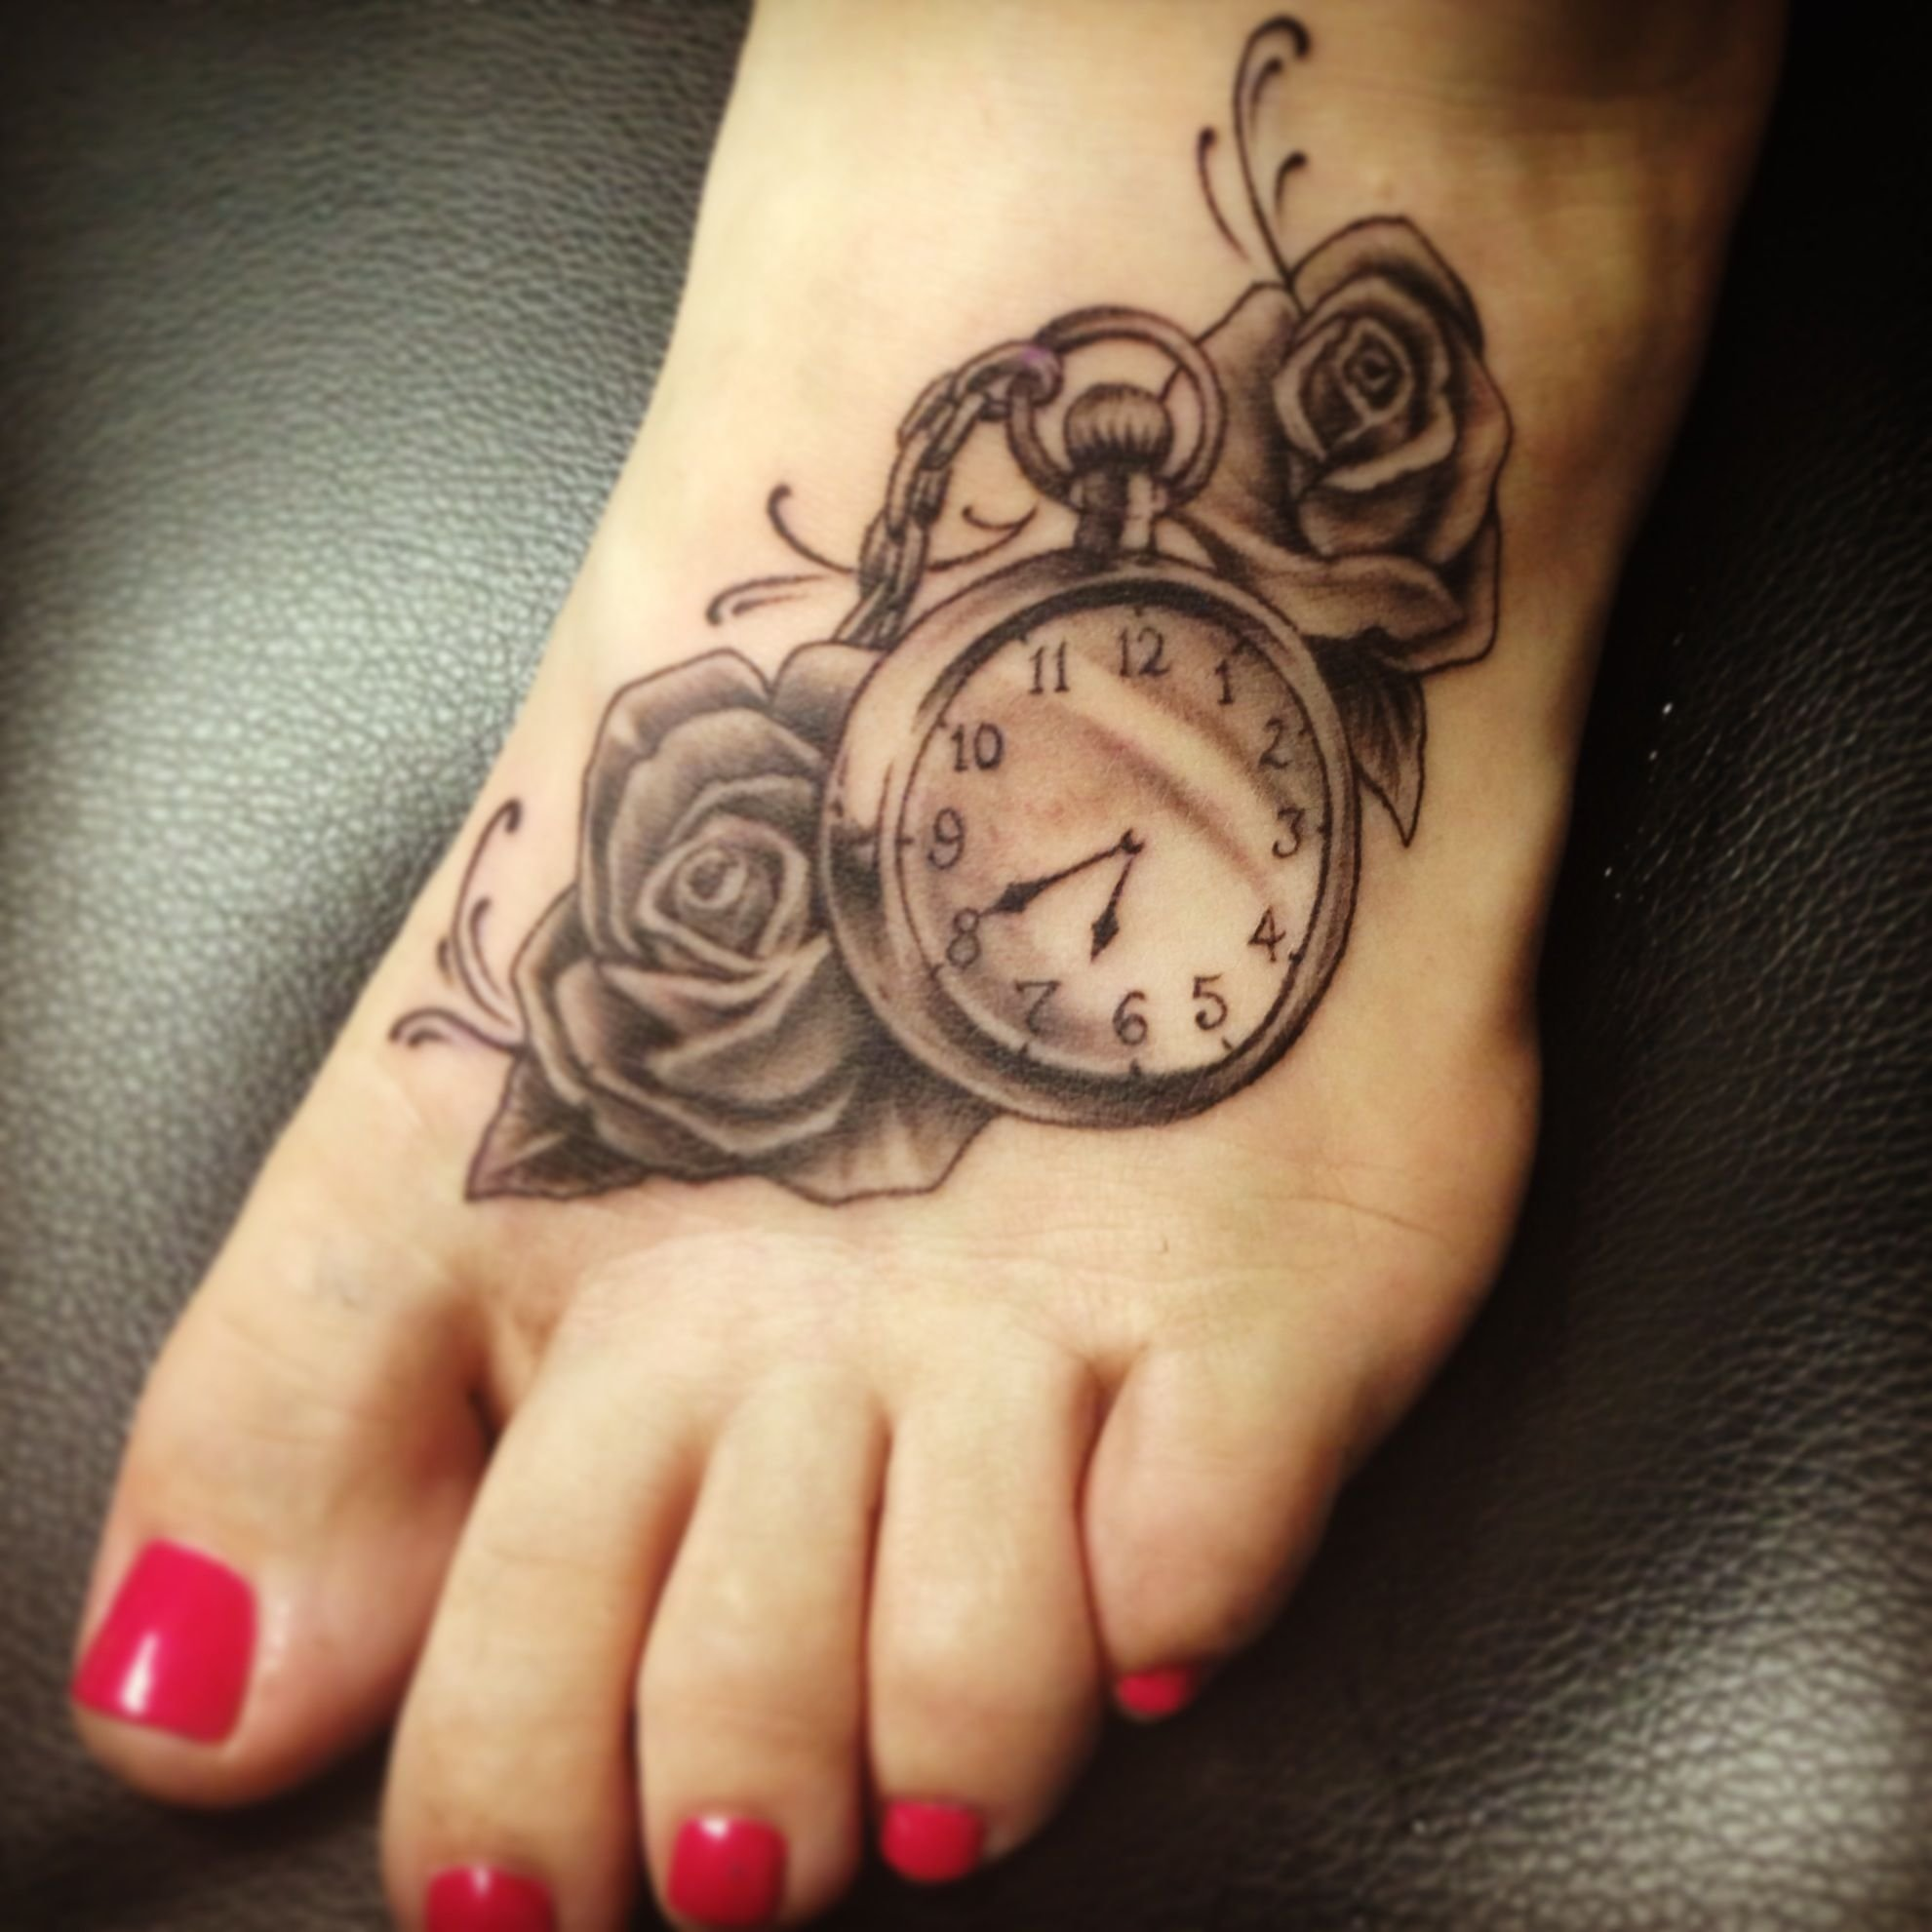 10 Famous Tattoo Ideas For Your Kids